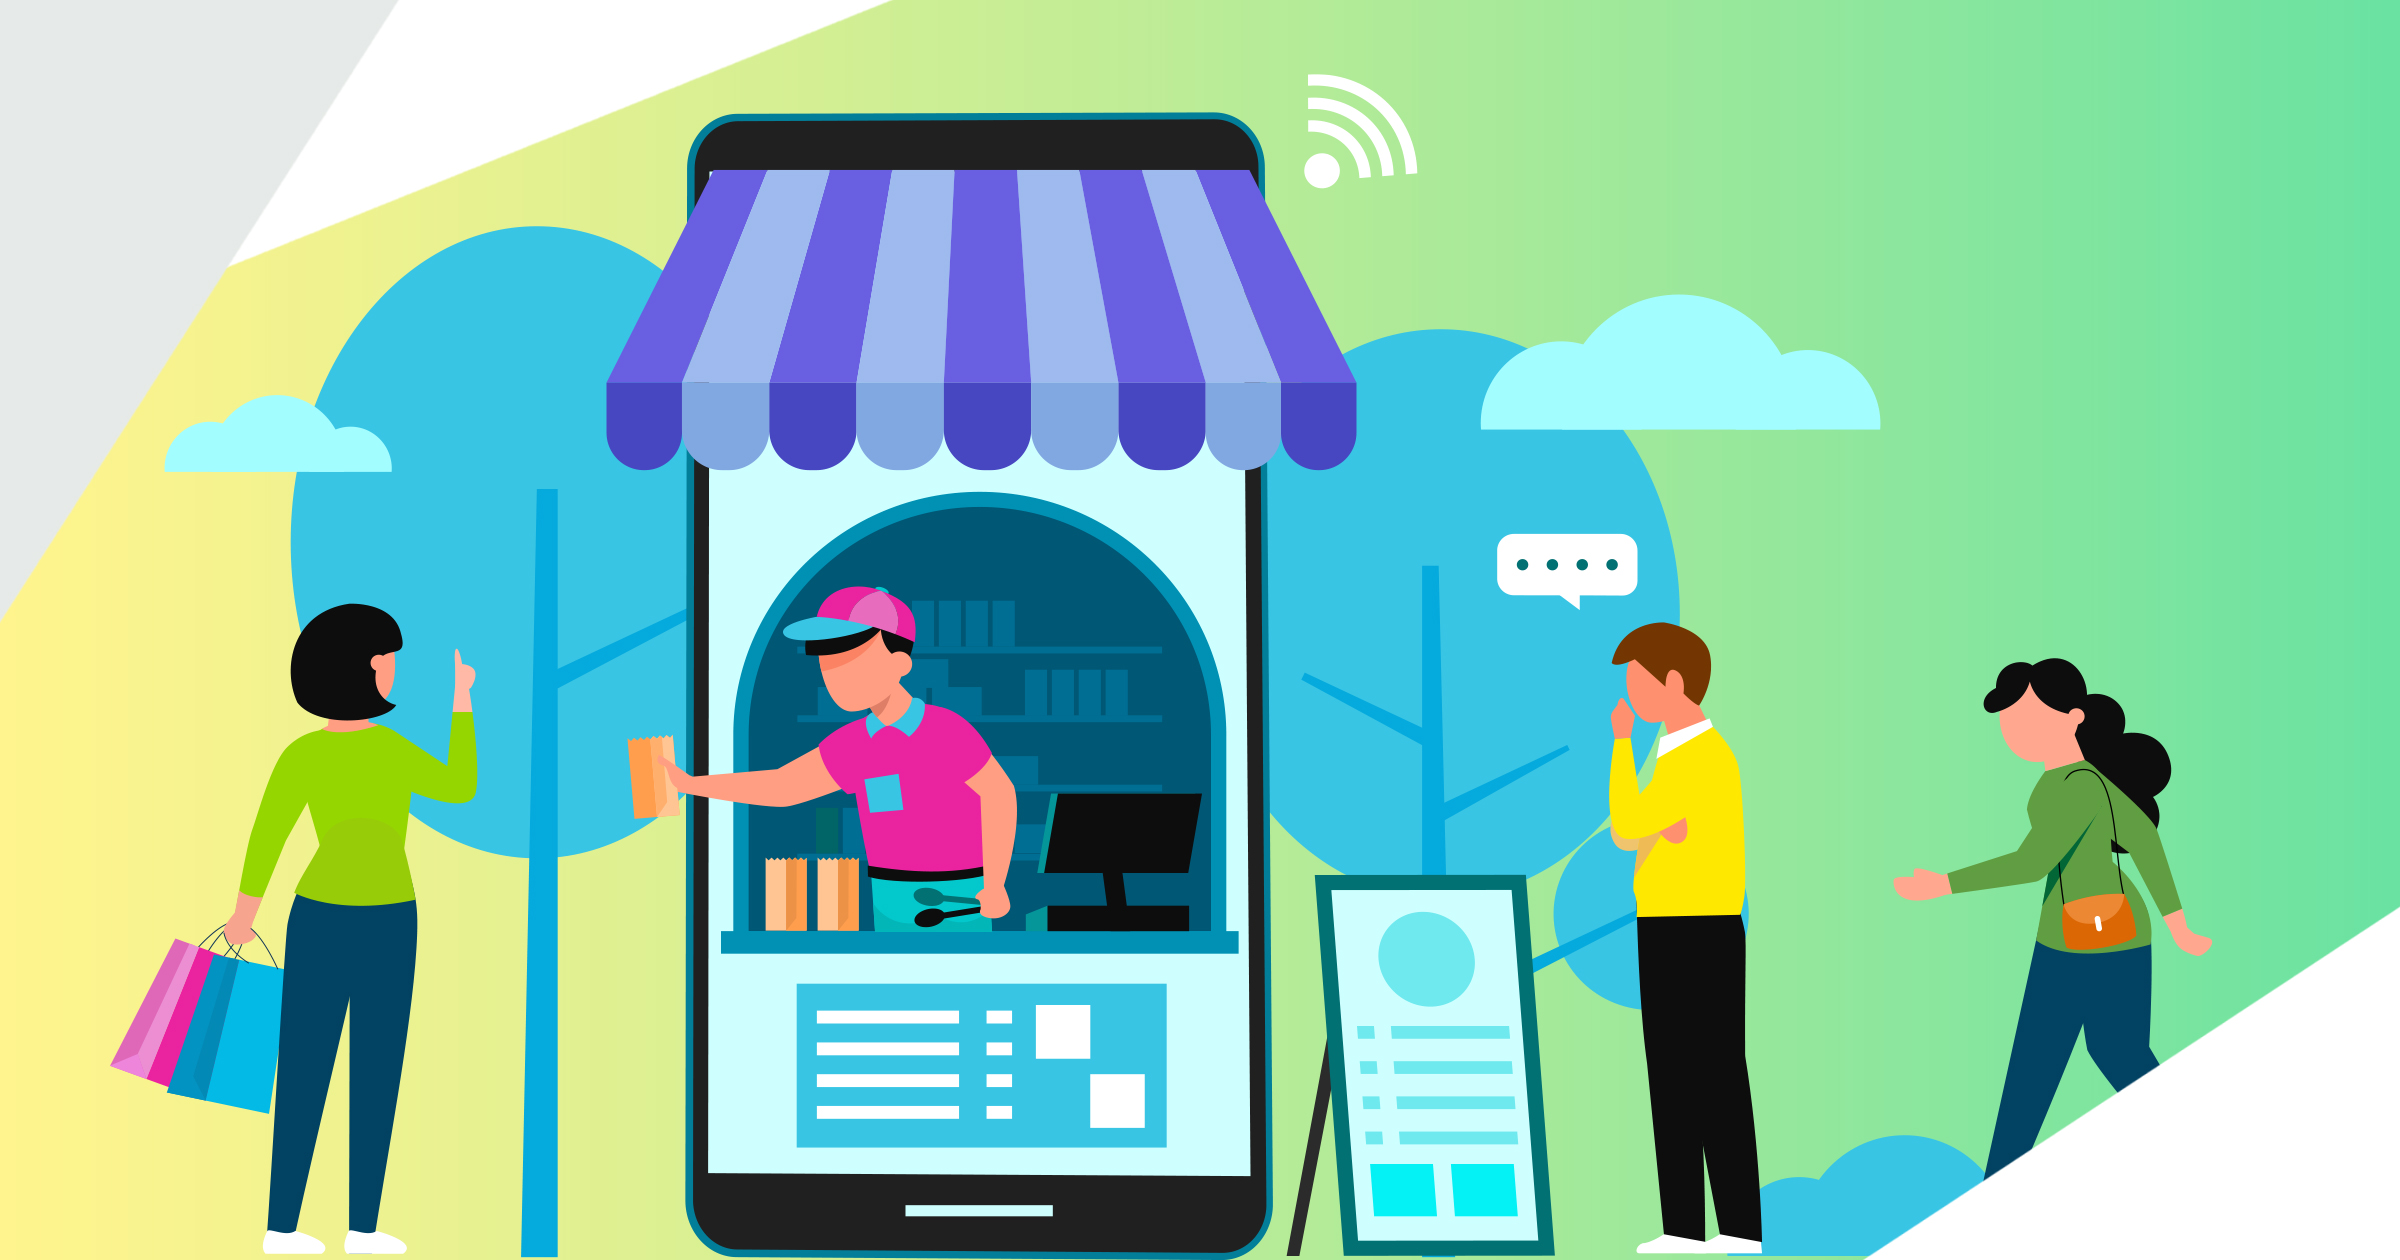 These Are The Simple Online Store Design Principles Used By Every Top eCommerce Site To Maximize UX